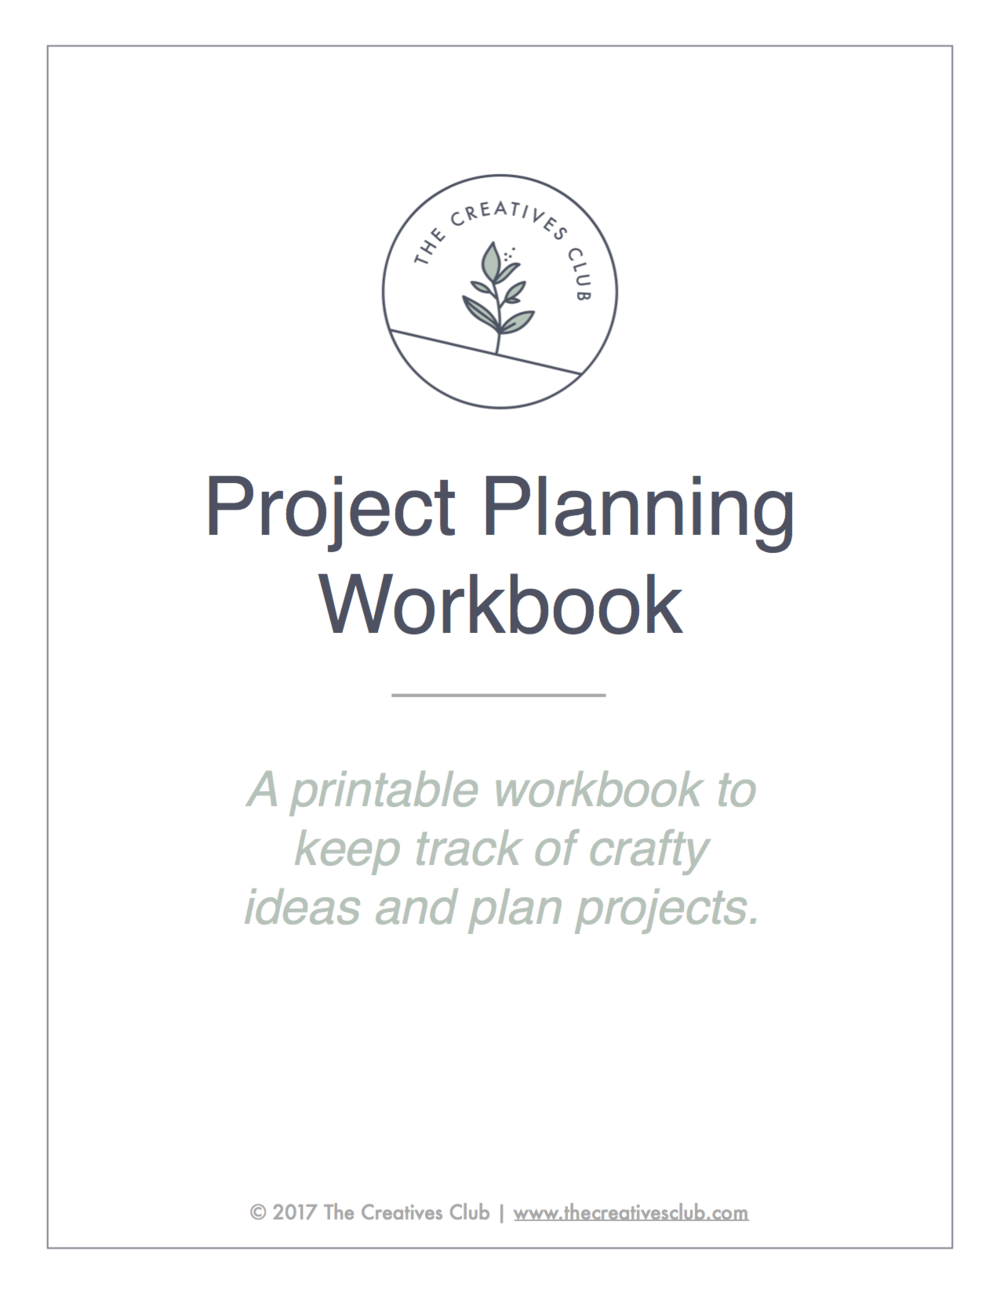 Project Planning Workbook TN.png